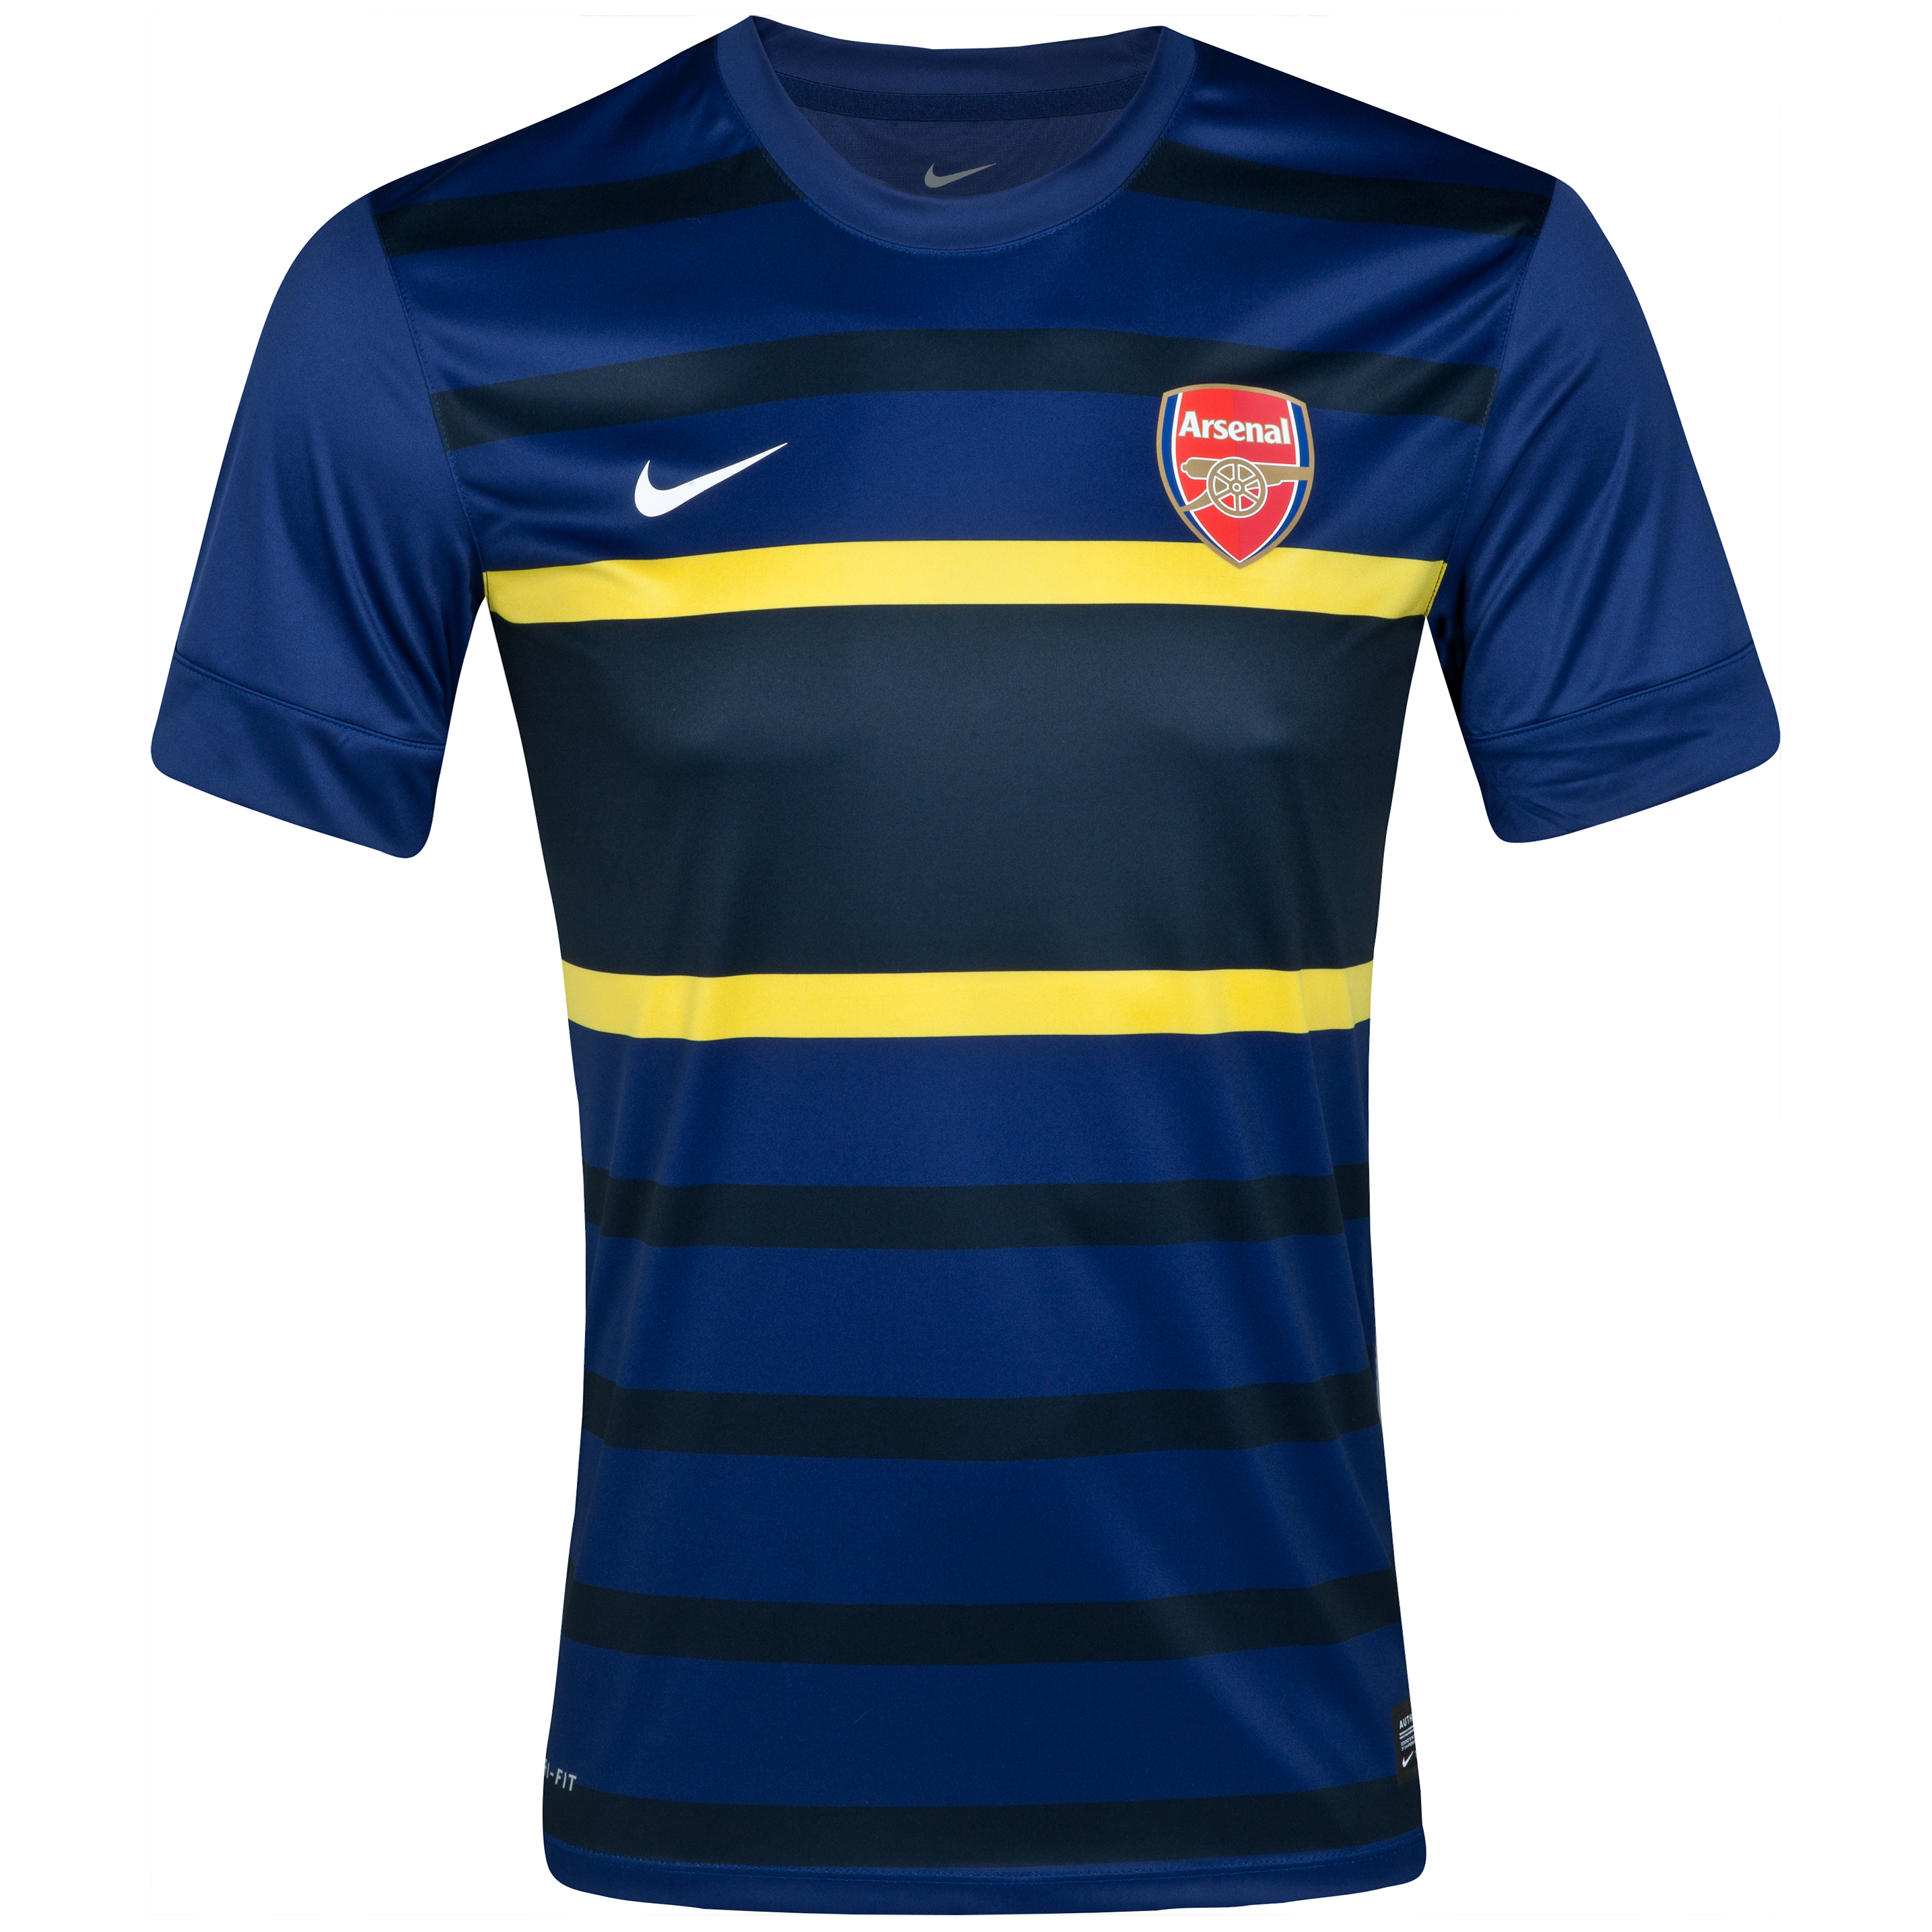 Arsenal Prematch Top 1 - Loyal Blue/Dark Obsidian/White